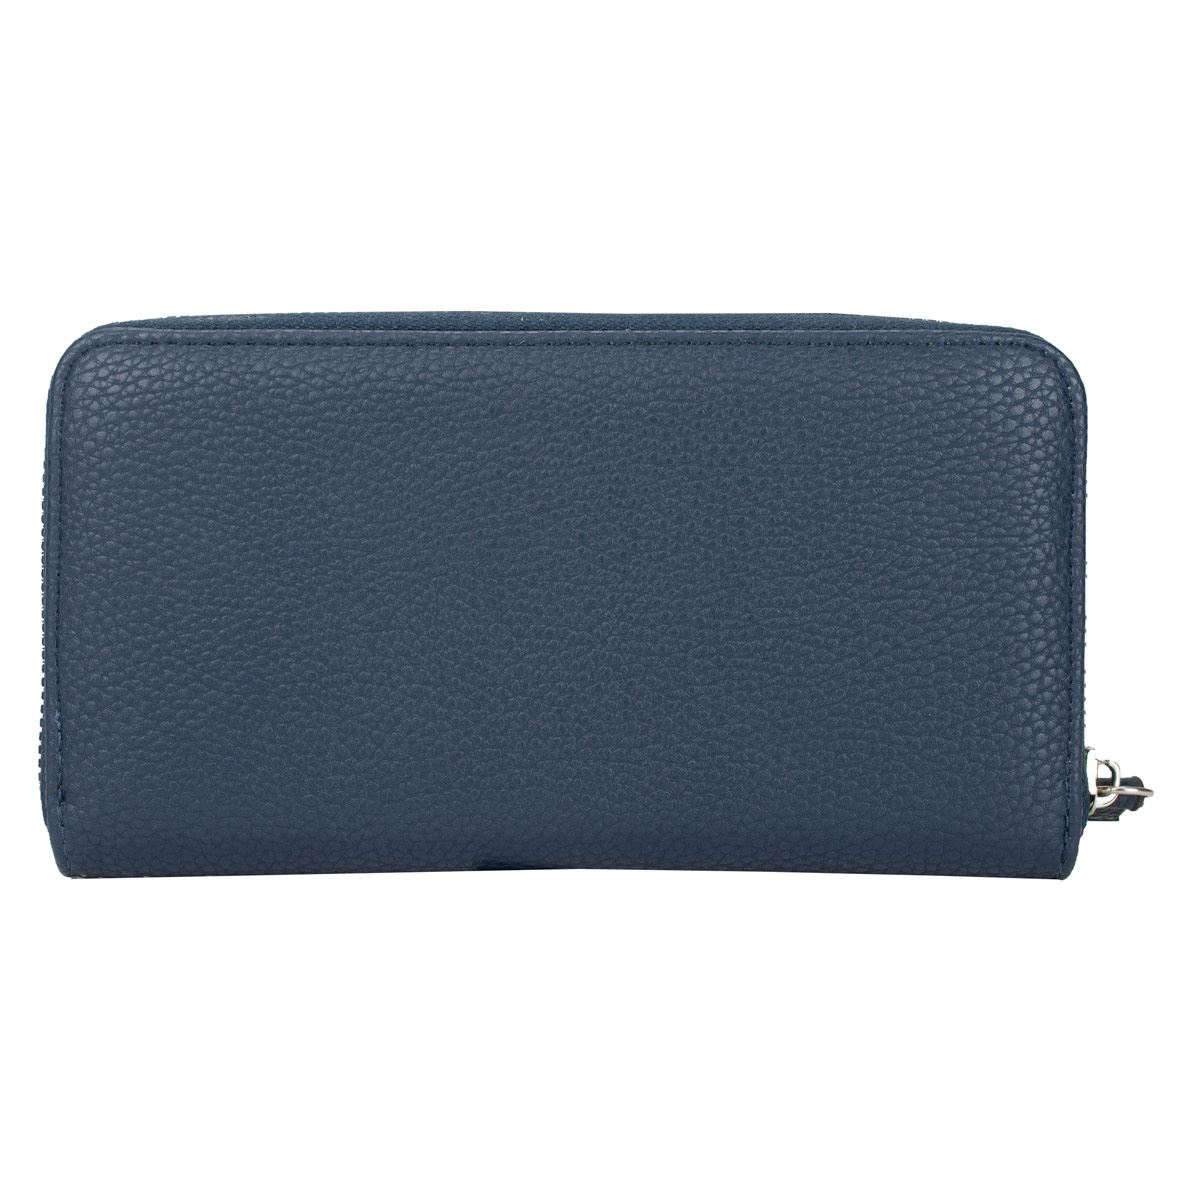 6cf205cac Cartera Perry Ellis marino